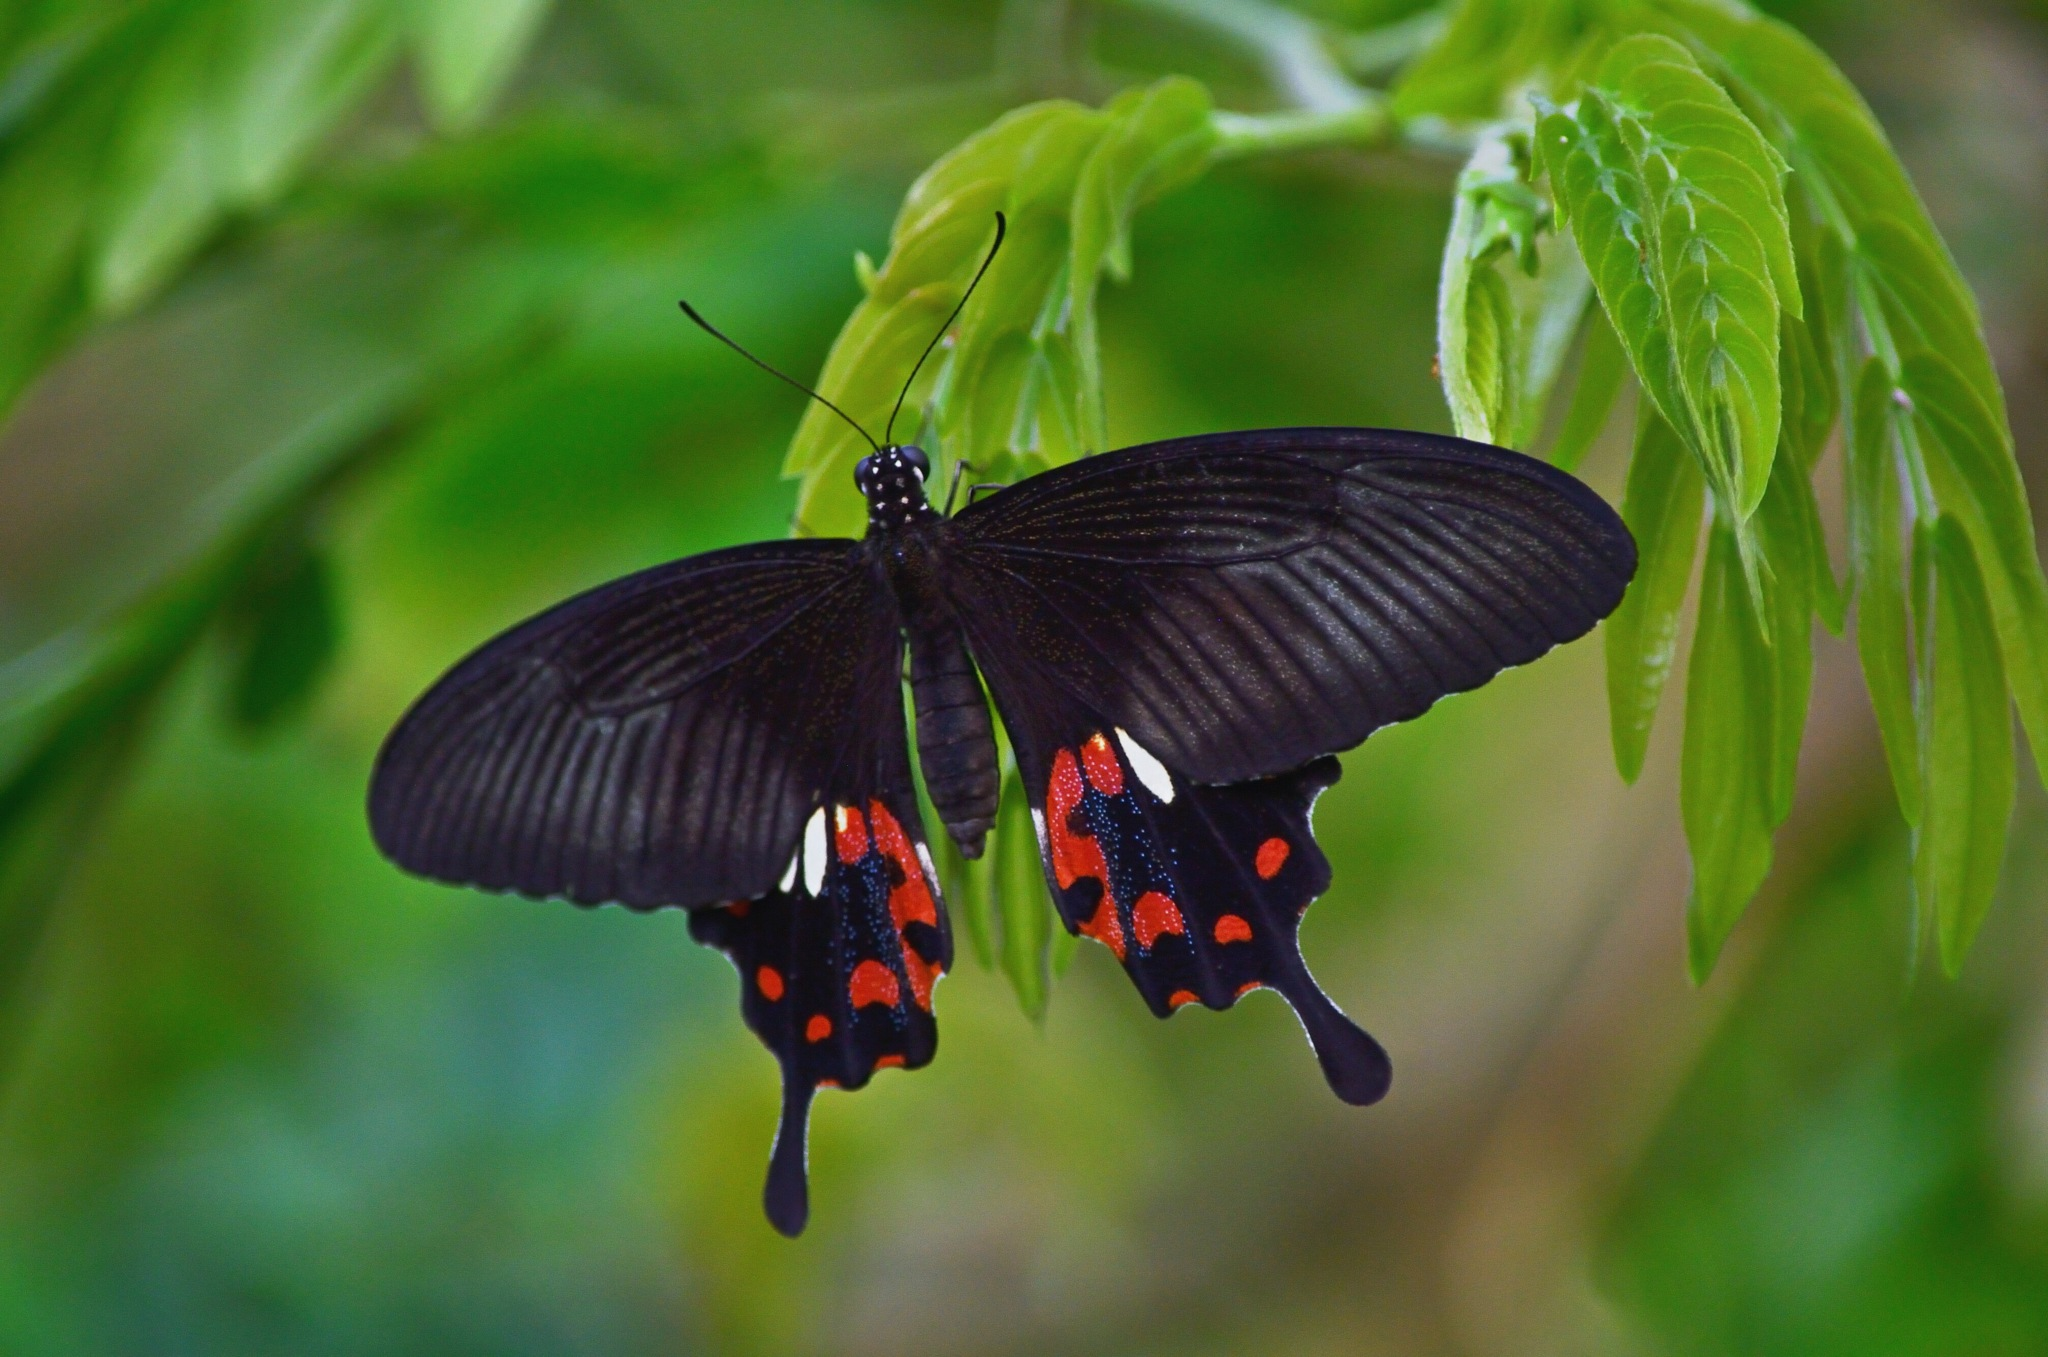 Beautiful butterfly don't know the name  by Henk Meima